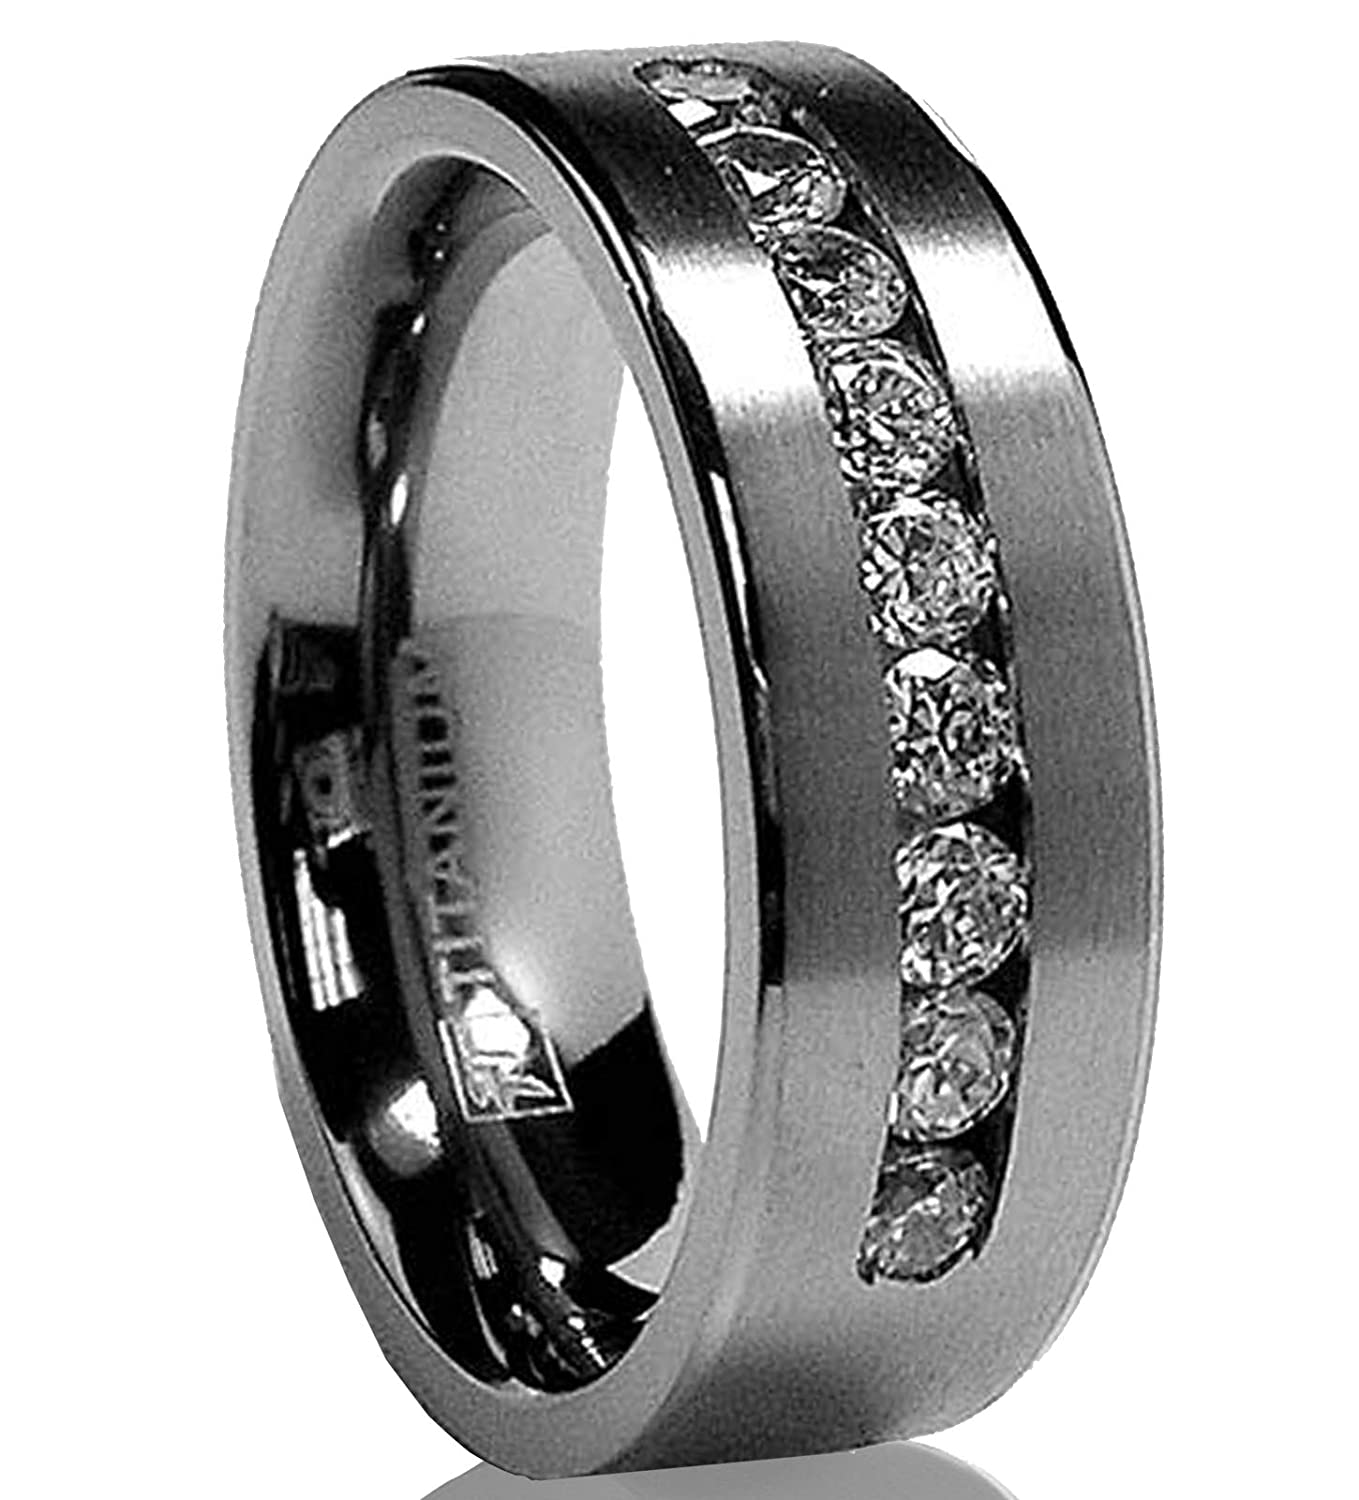 Mens Wedding Bands Titanium.Metal Masters Co 8 Mm Men S Titanium Ring Wedding Band With 9 Large Channel Set Cubic Zirconia Cz Sizes 6 To 15